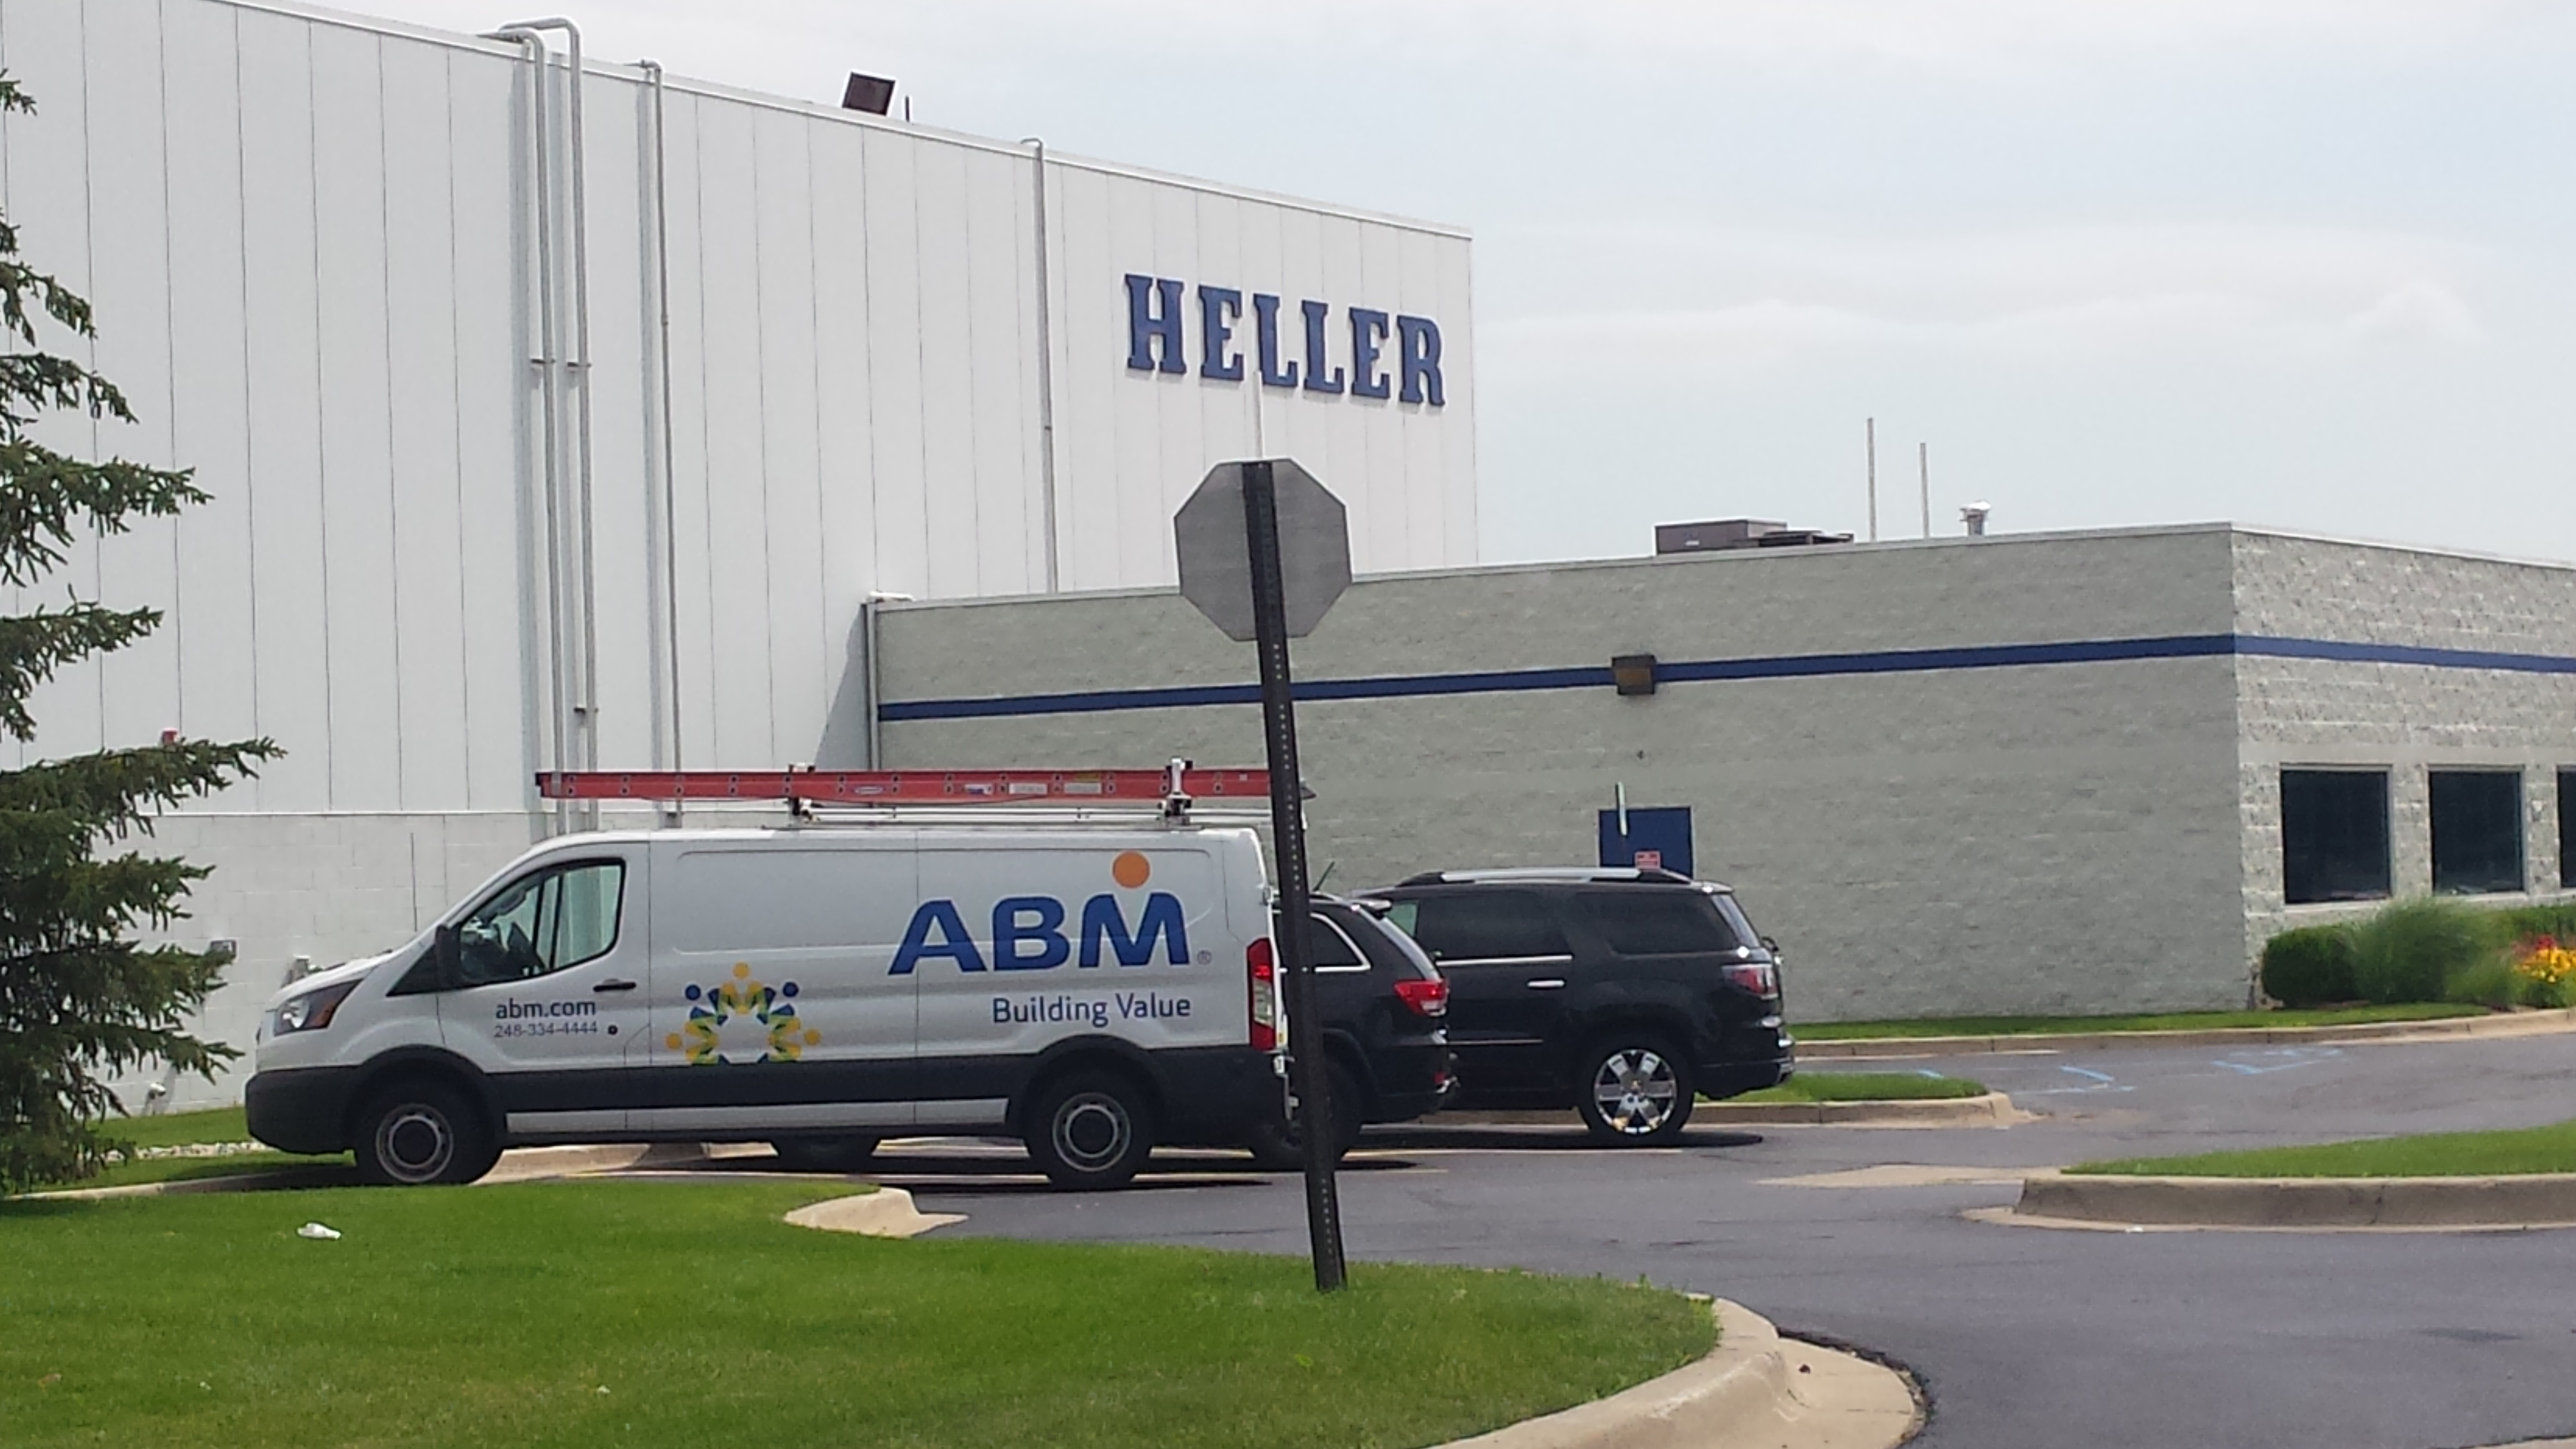 ABM and Heller Machine Tools